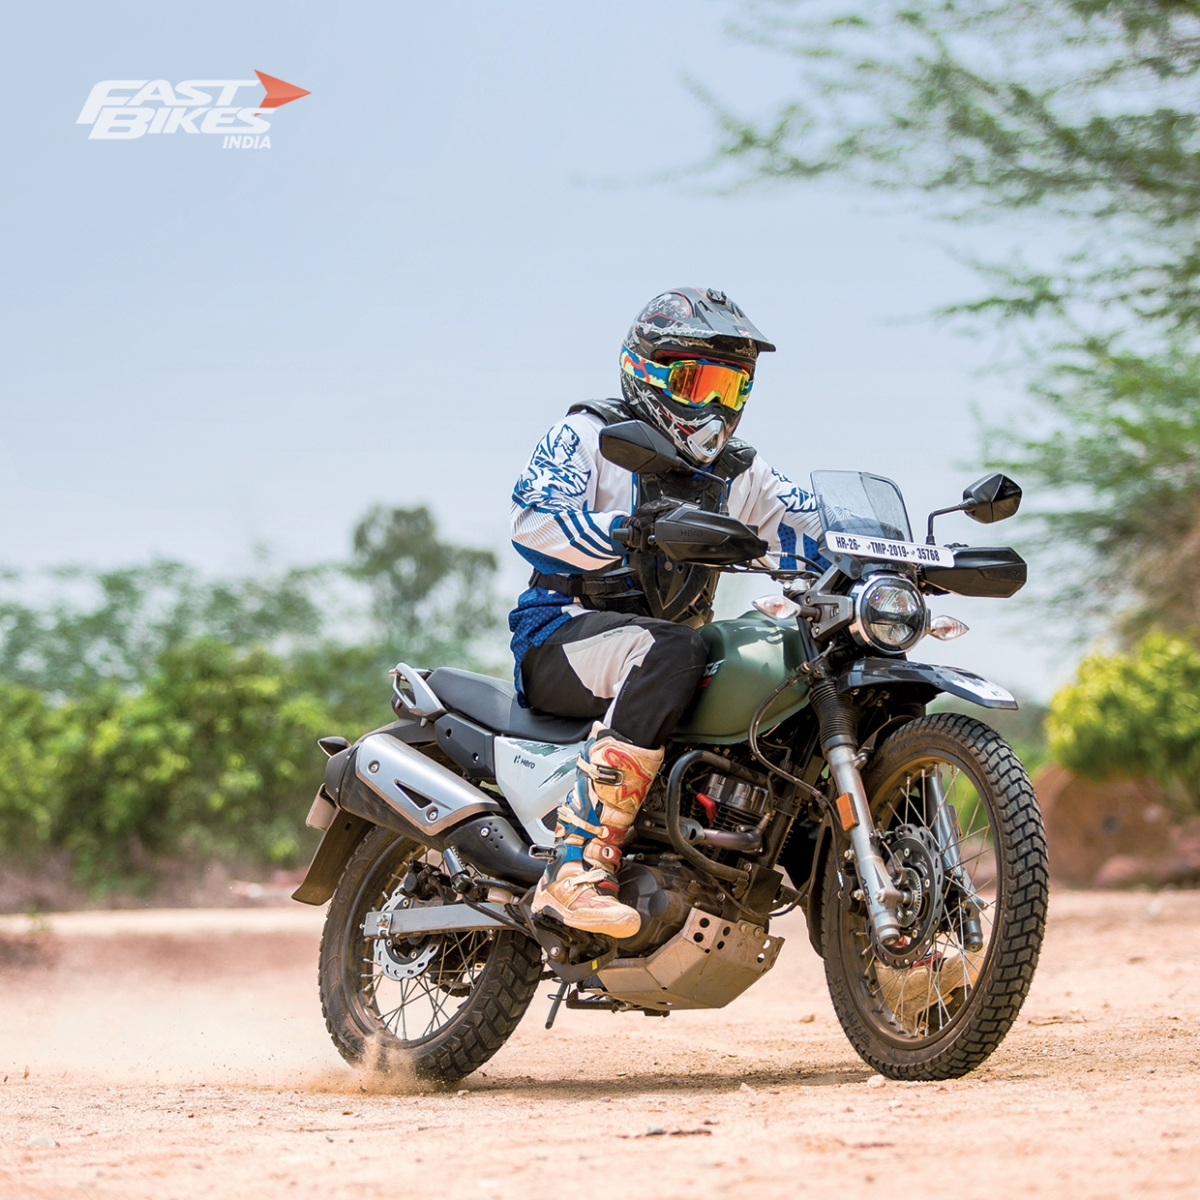 Bijoy Kumar column – The charm of on-off road bikes